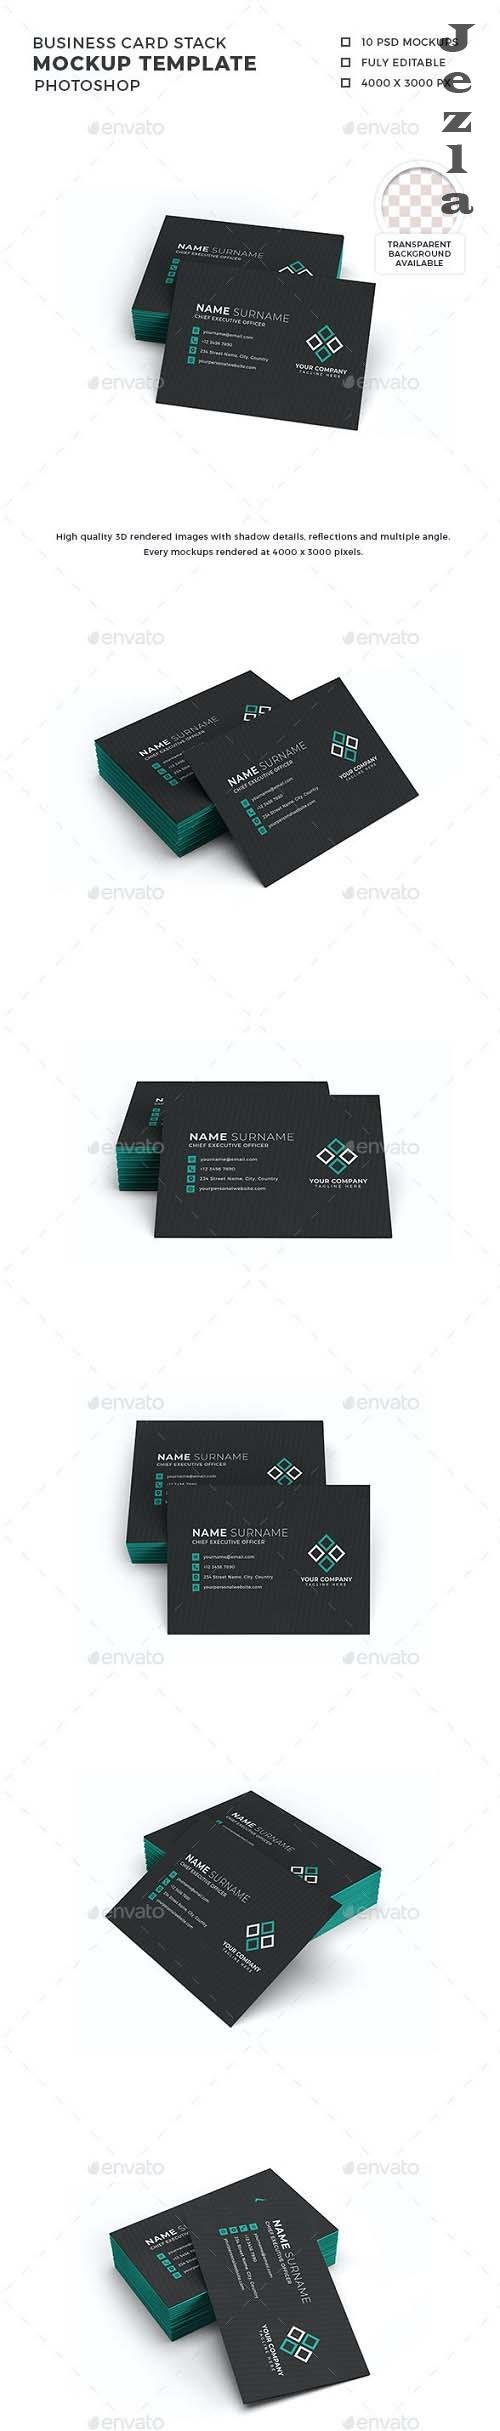 Business Card Stack Mockup Template - 30049199